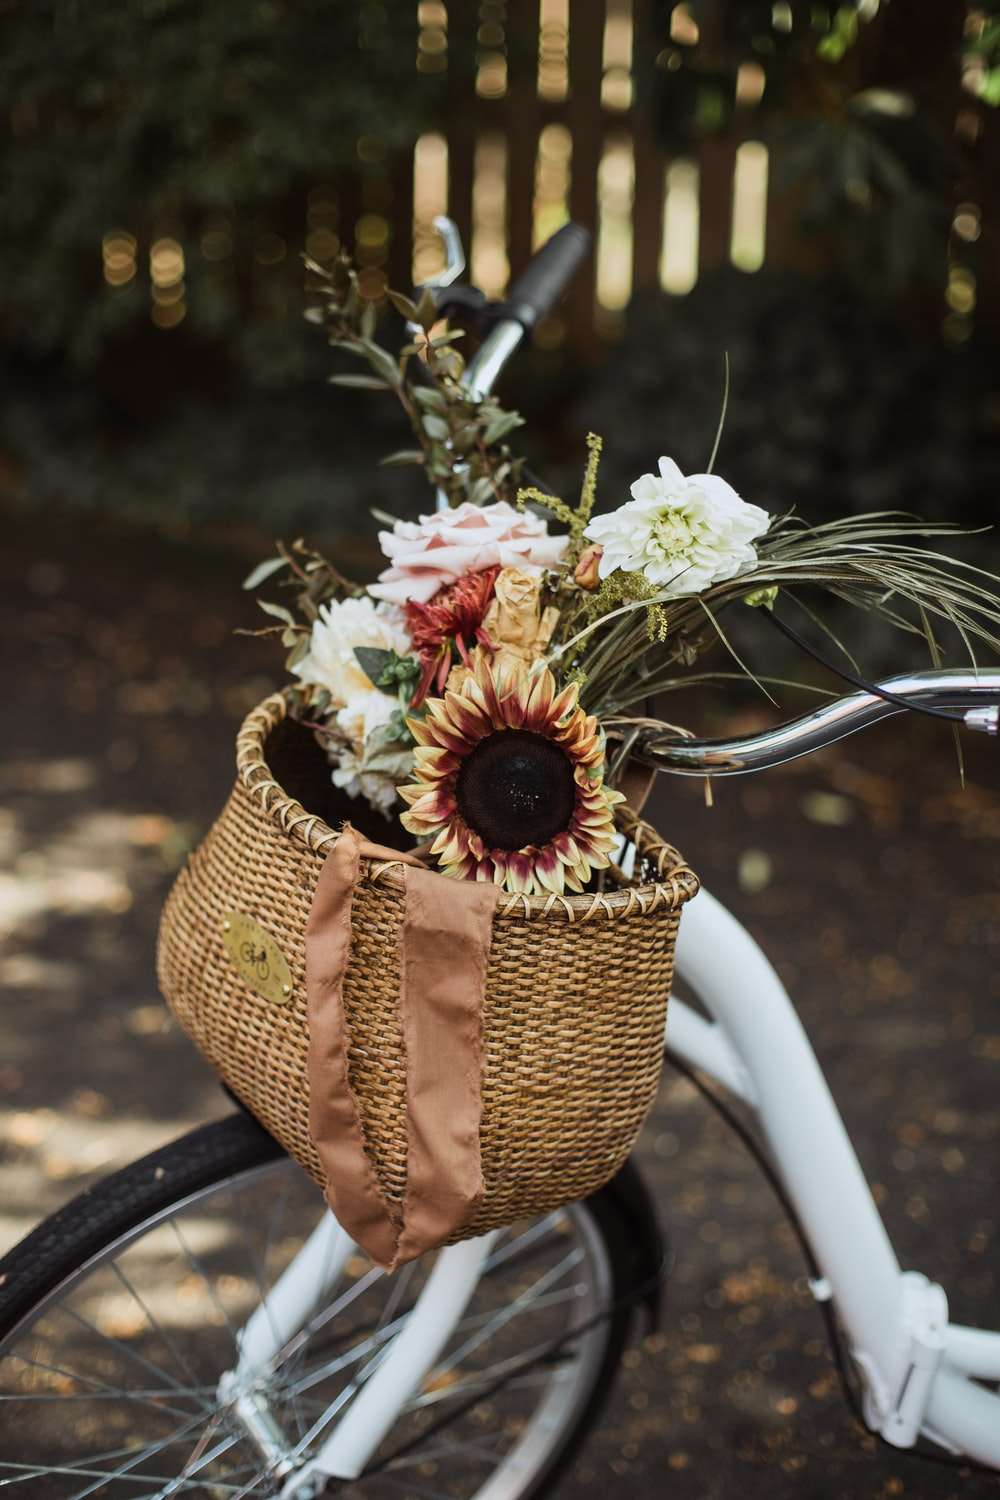 assorted flowers on a brown bike basket